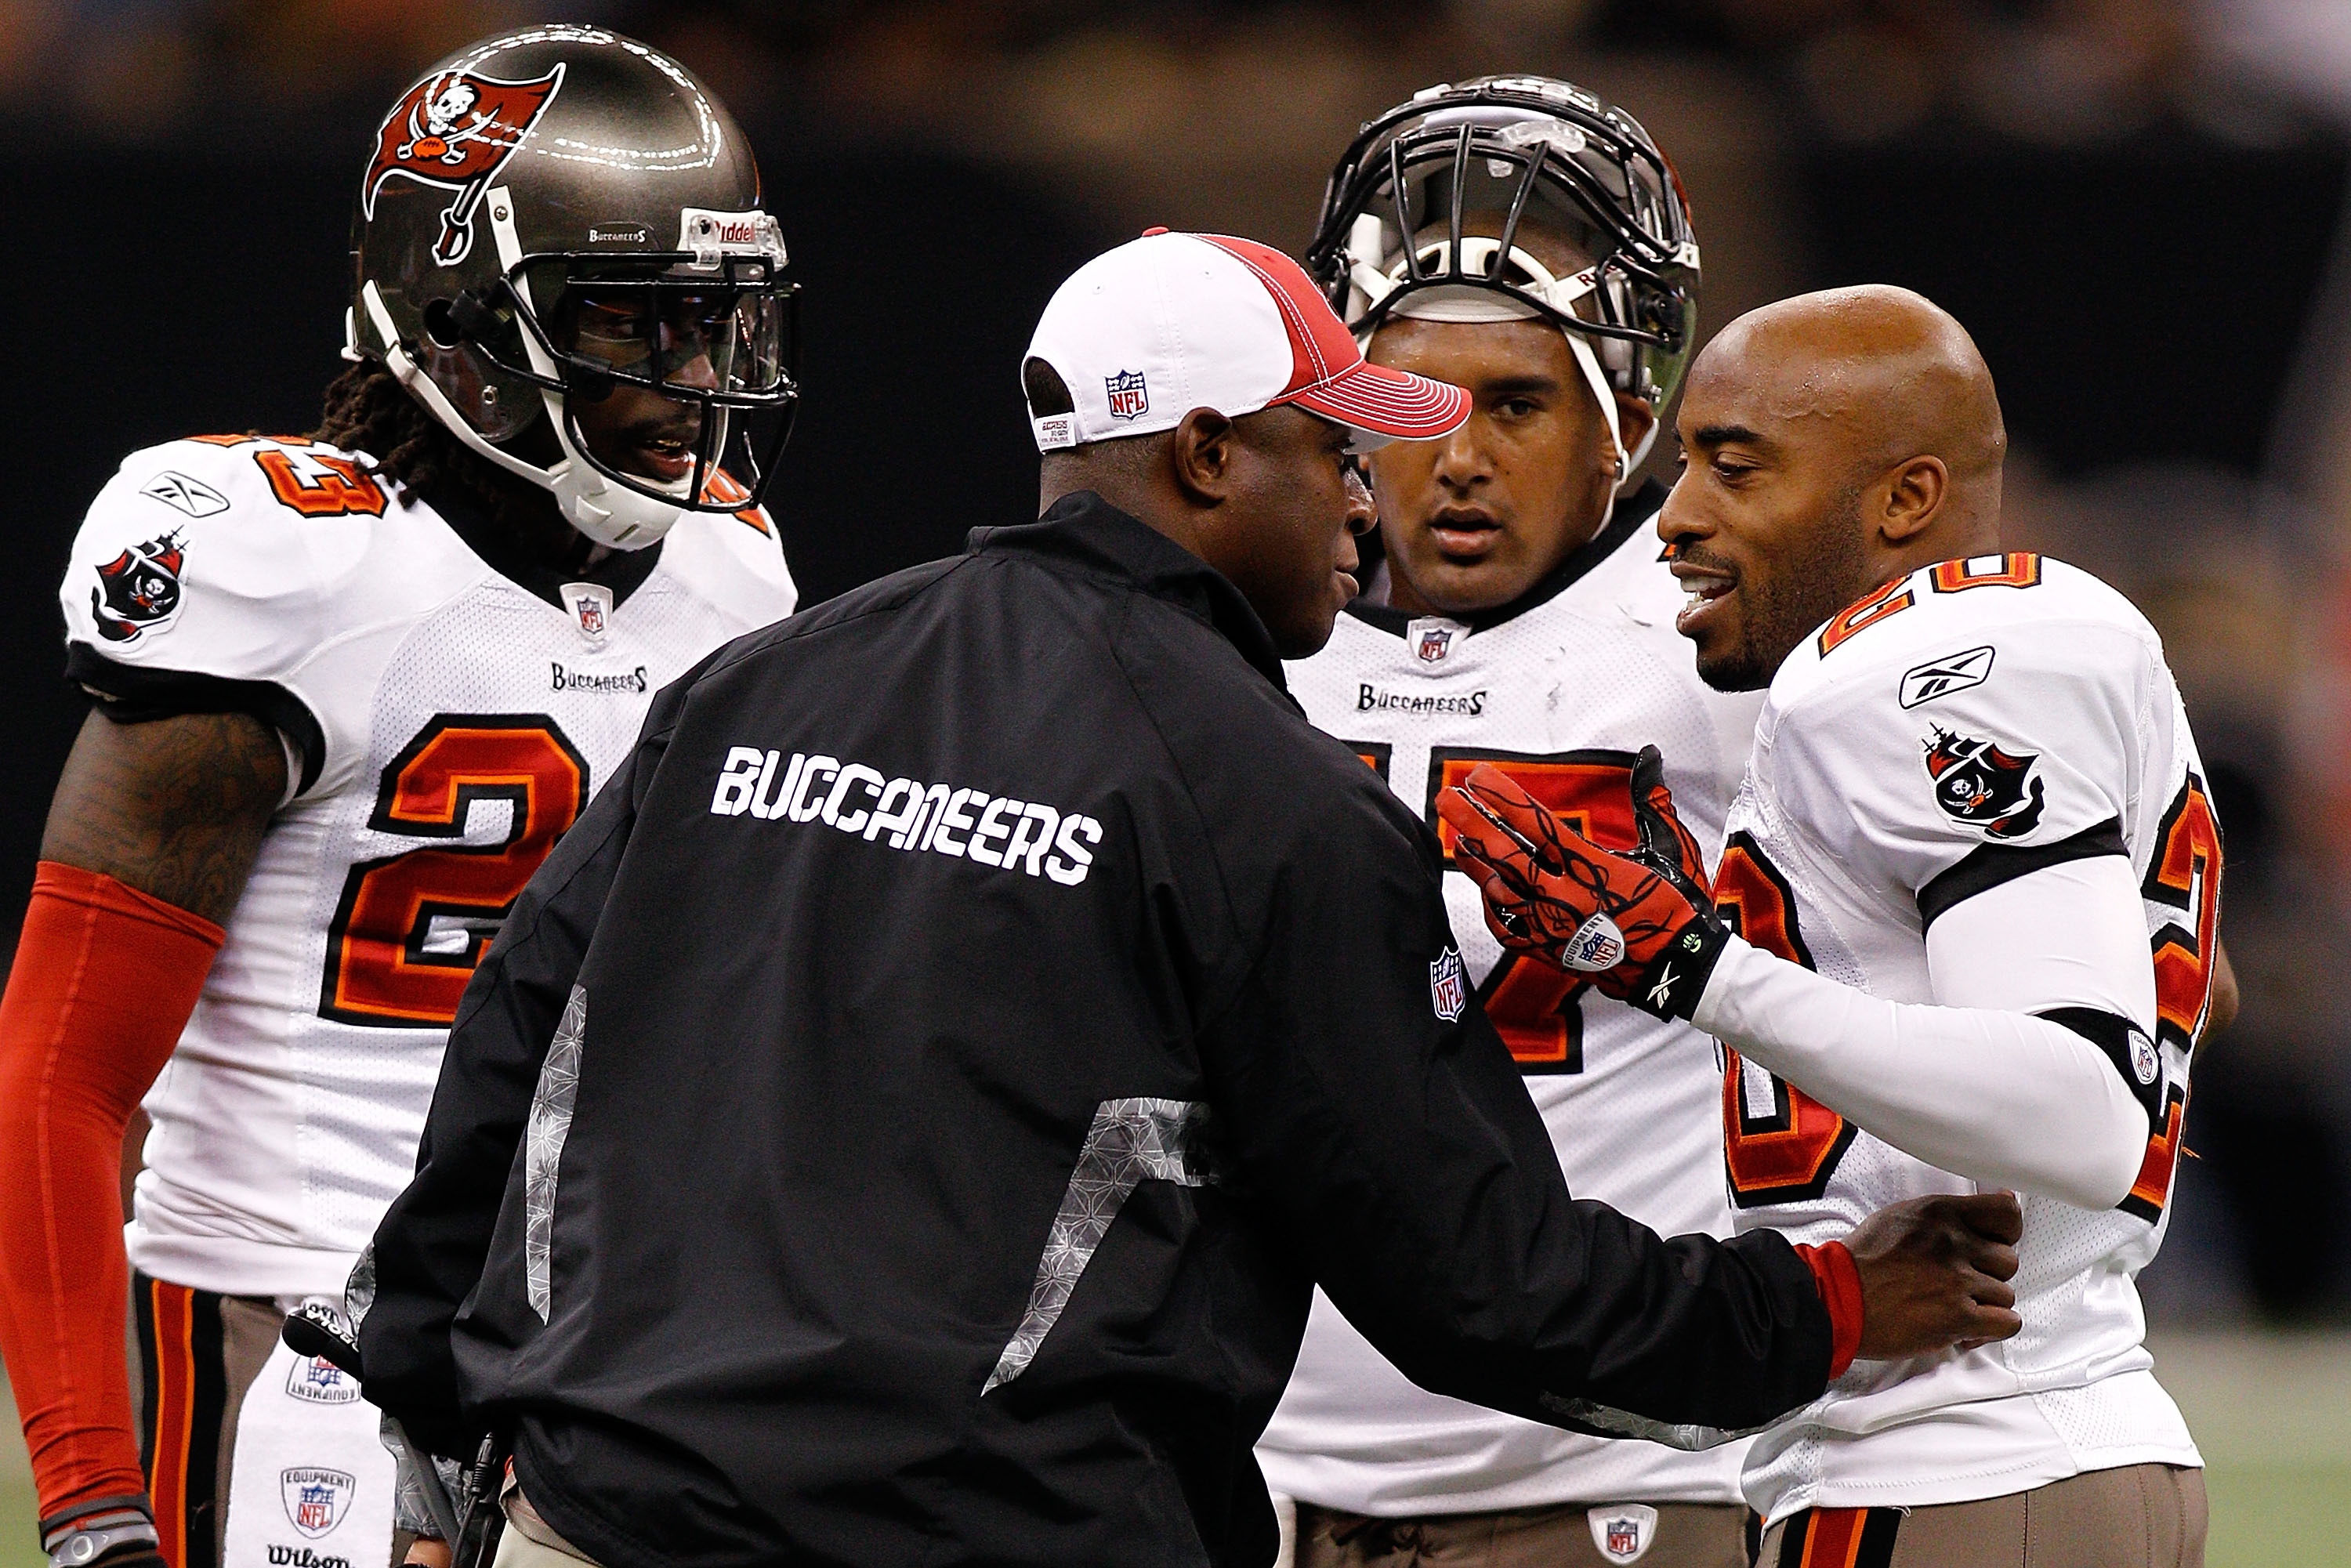 NEW ORLEANS, LA - JANUARY 02:  Head coach Raheem Morris talks with Ronde Barber #20 of the Tampa Bay Buccaneers during the game against the New Orleans Saints at the Louisiana Superdome on January 2, 2011 in New Orleans, Louisiana.  The Buccaneers defeate